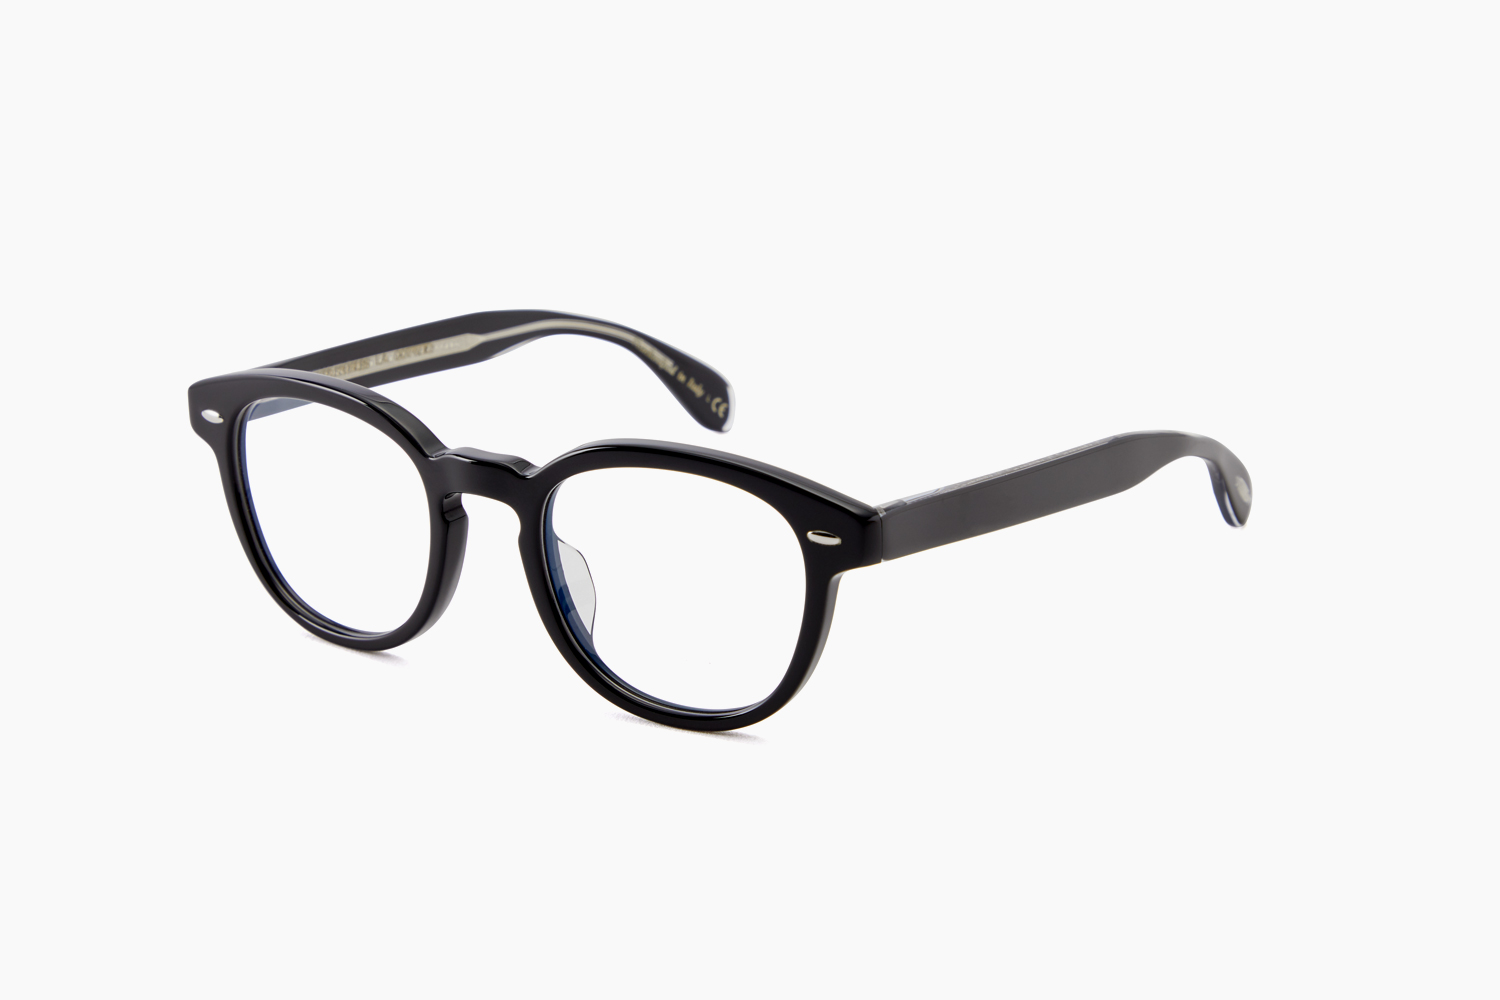 SHELDRAKE - 1492|OLIVER PEOPLES